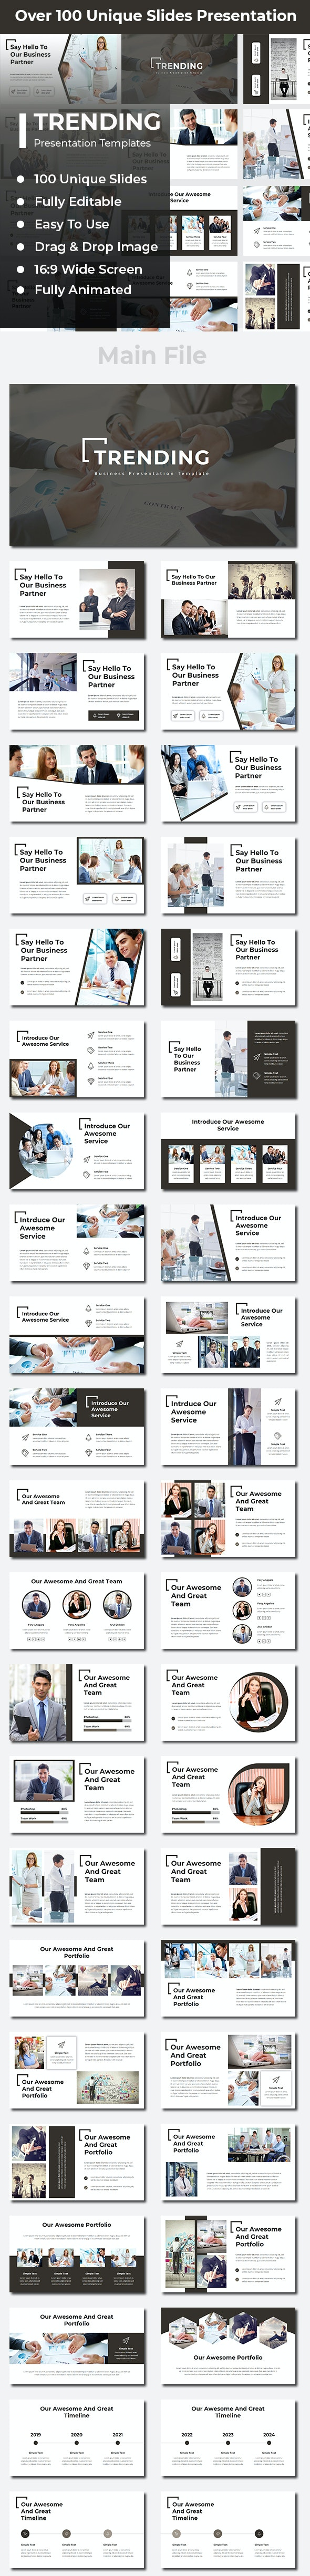 Trending Business PowerPoint - Business PowerPoint Templates